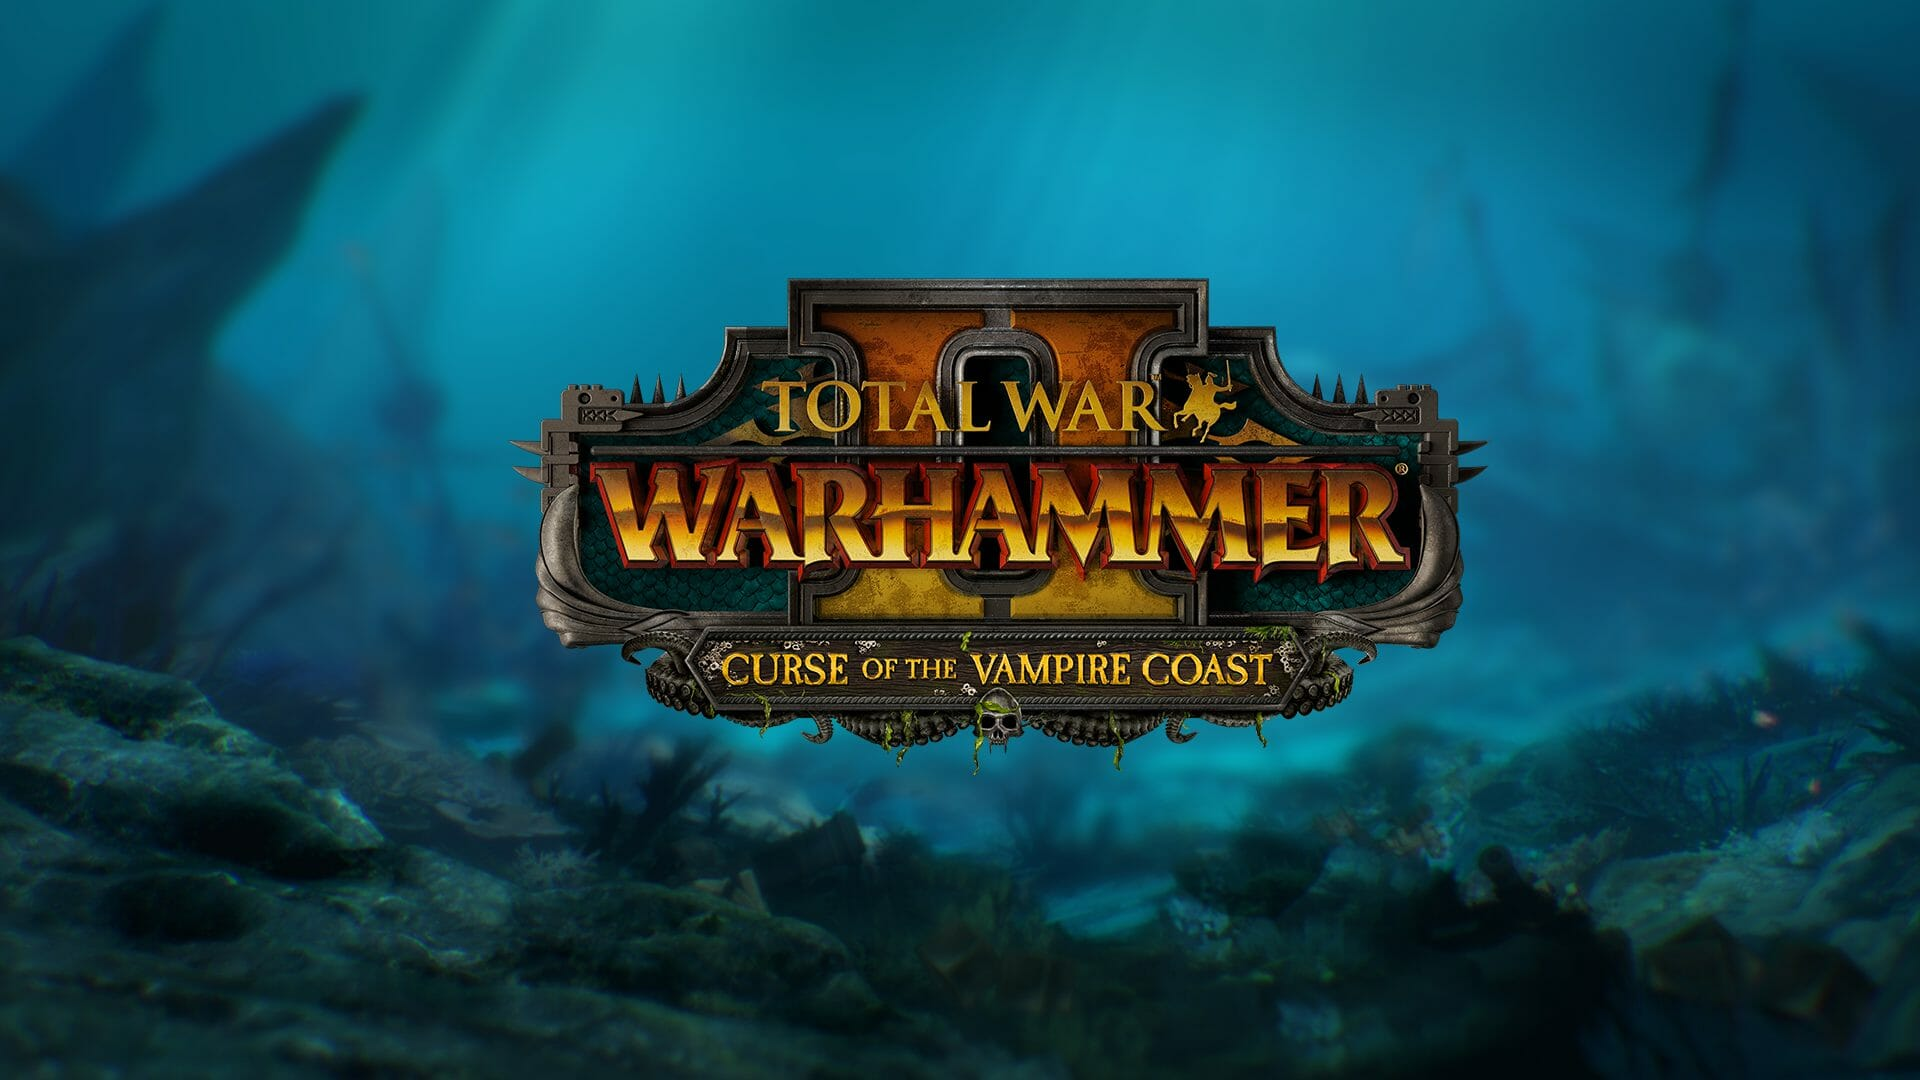 Total War: WARHAMMER II – Curse of the Vampire Coast FAQ